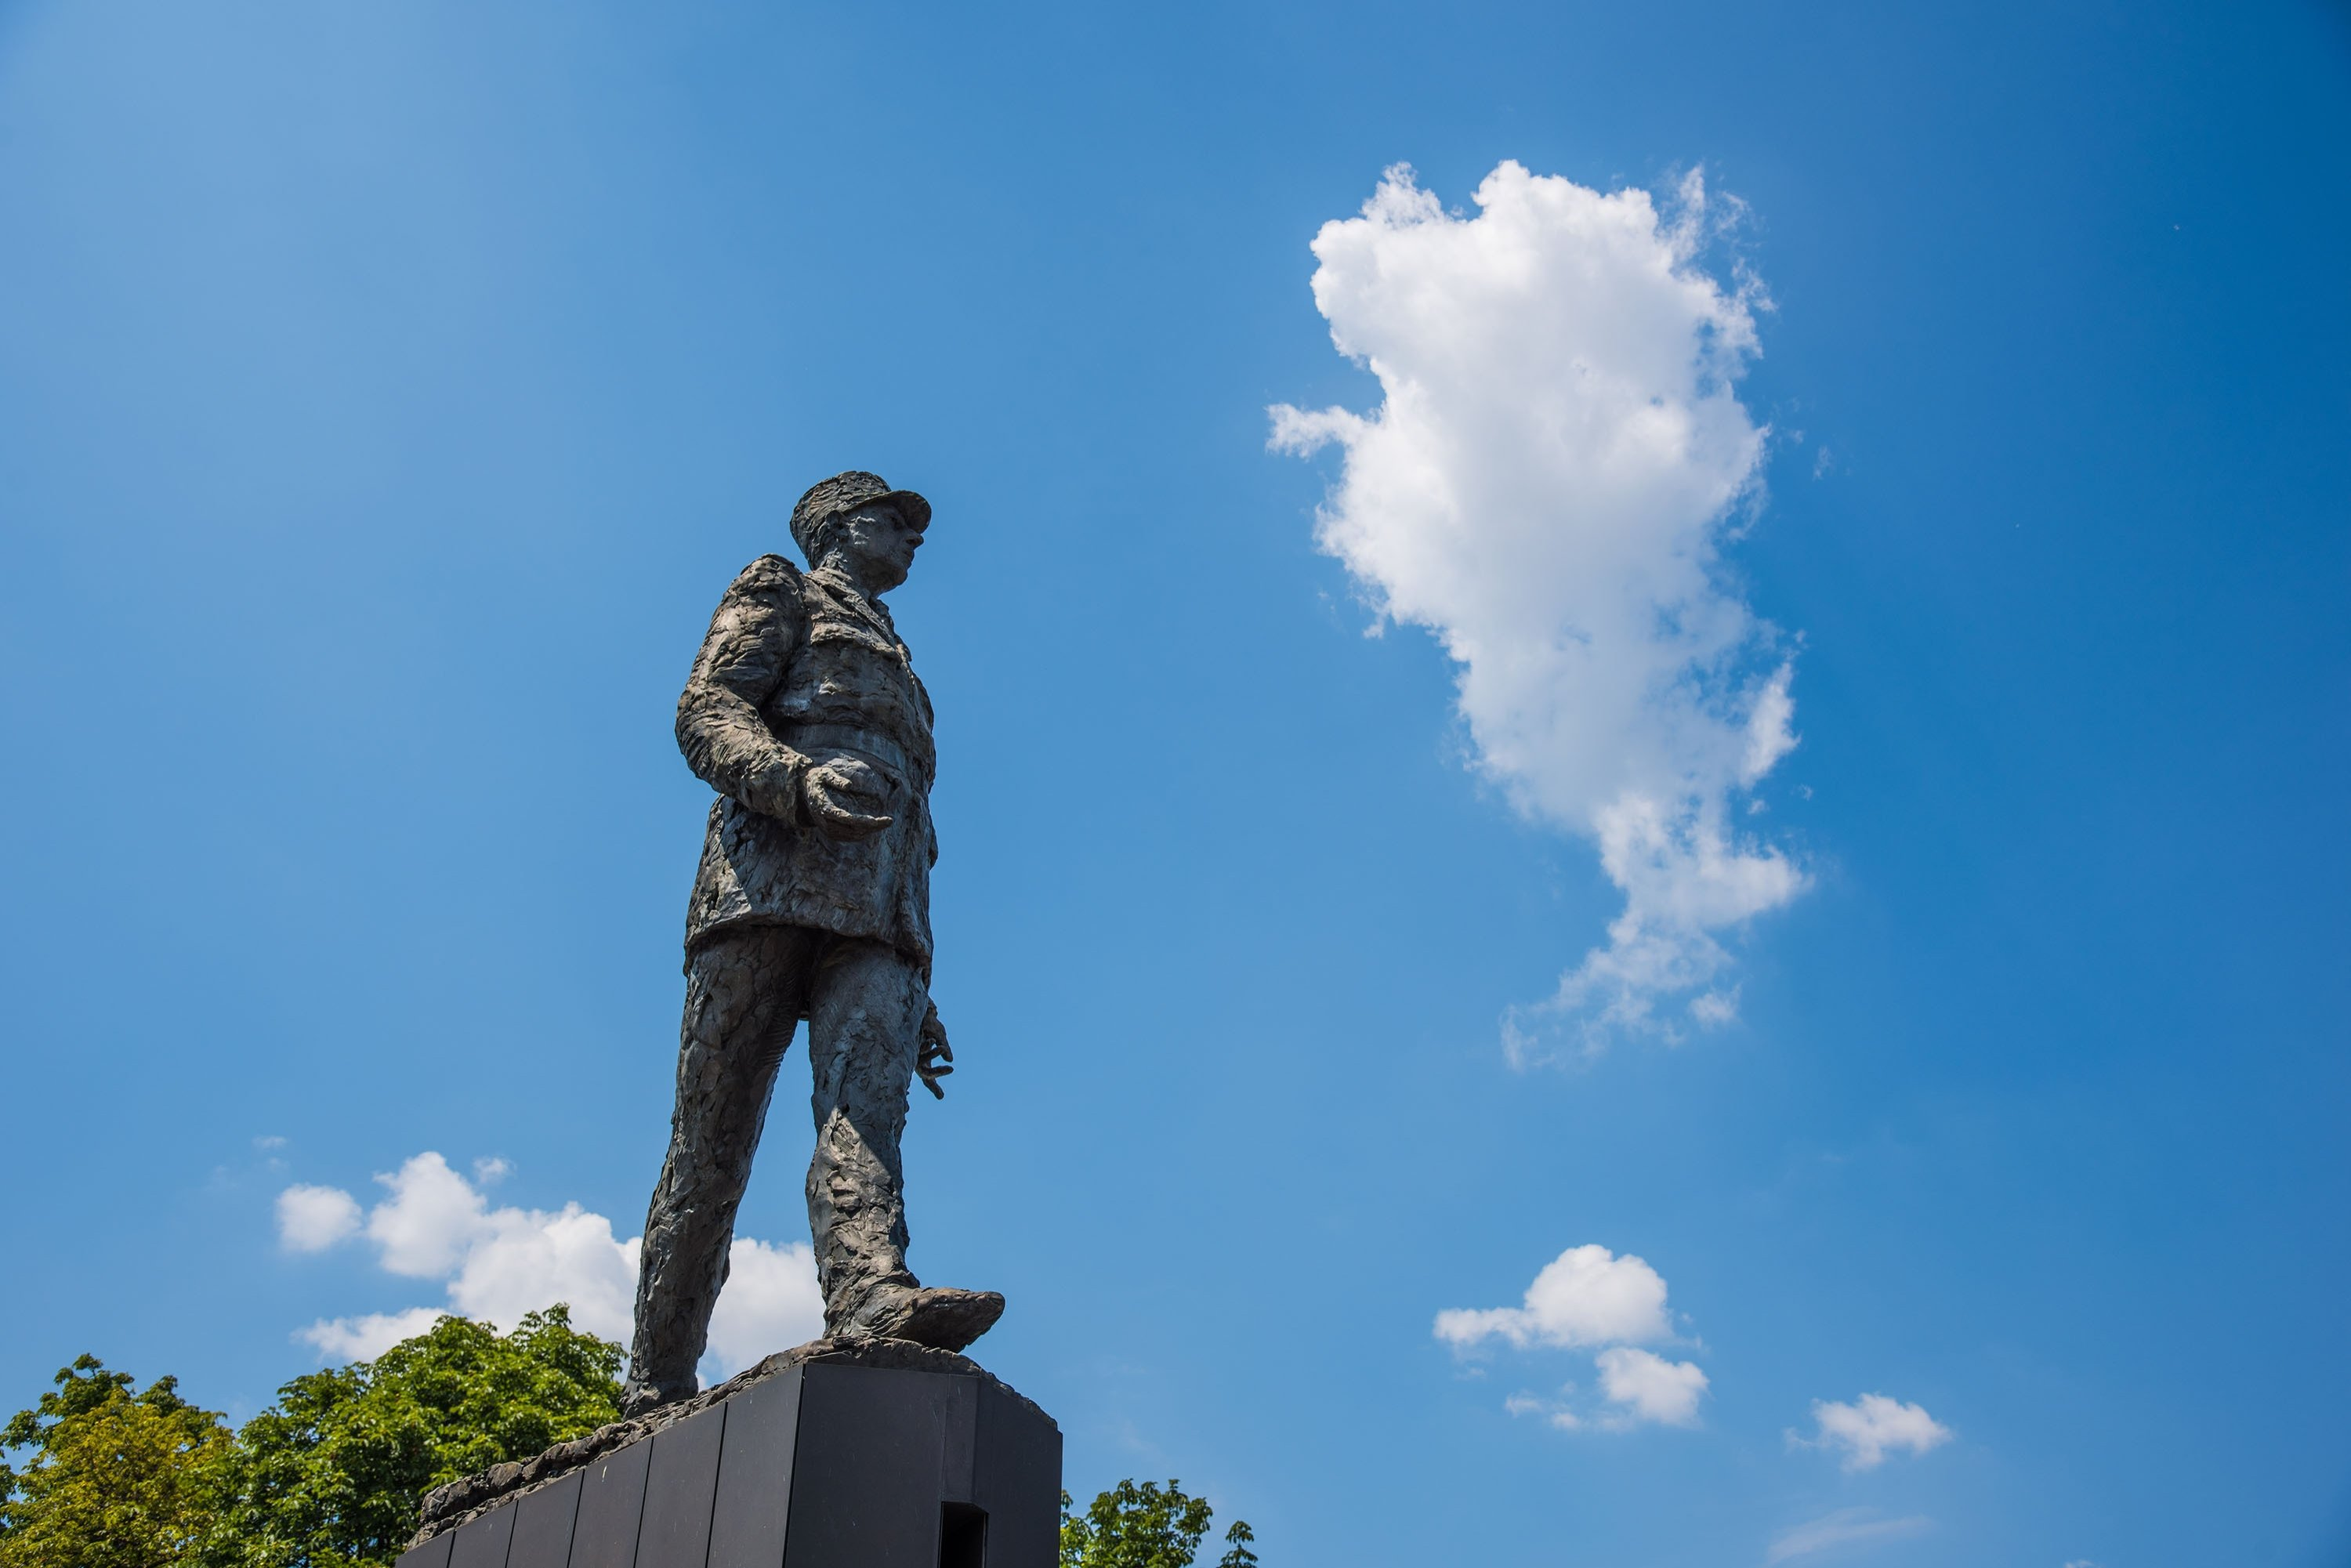 The Charles de Gaulle statue in Clemenceau, Paris, France, July 6, 2018. (Shutterstock Photo)